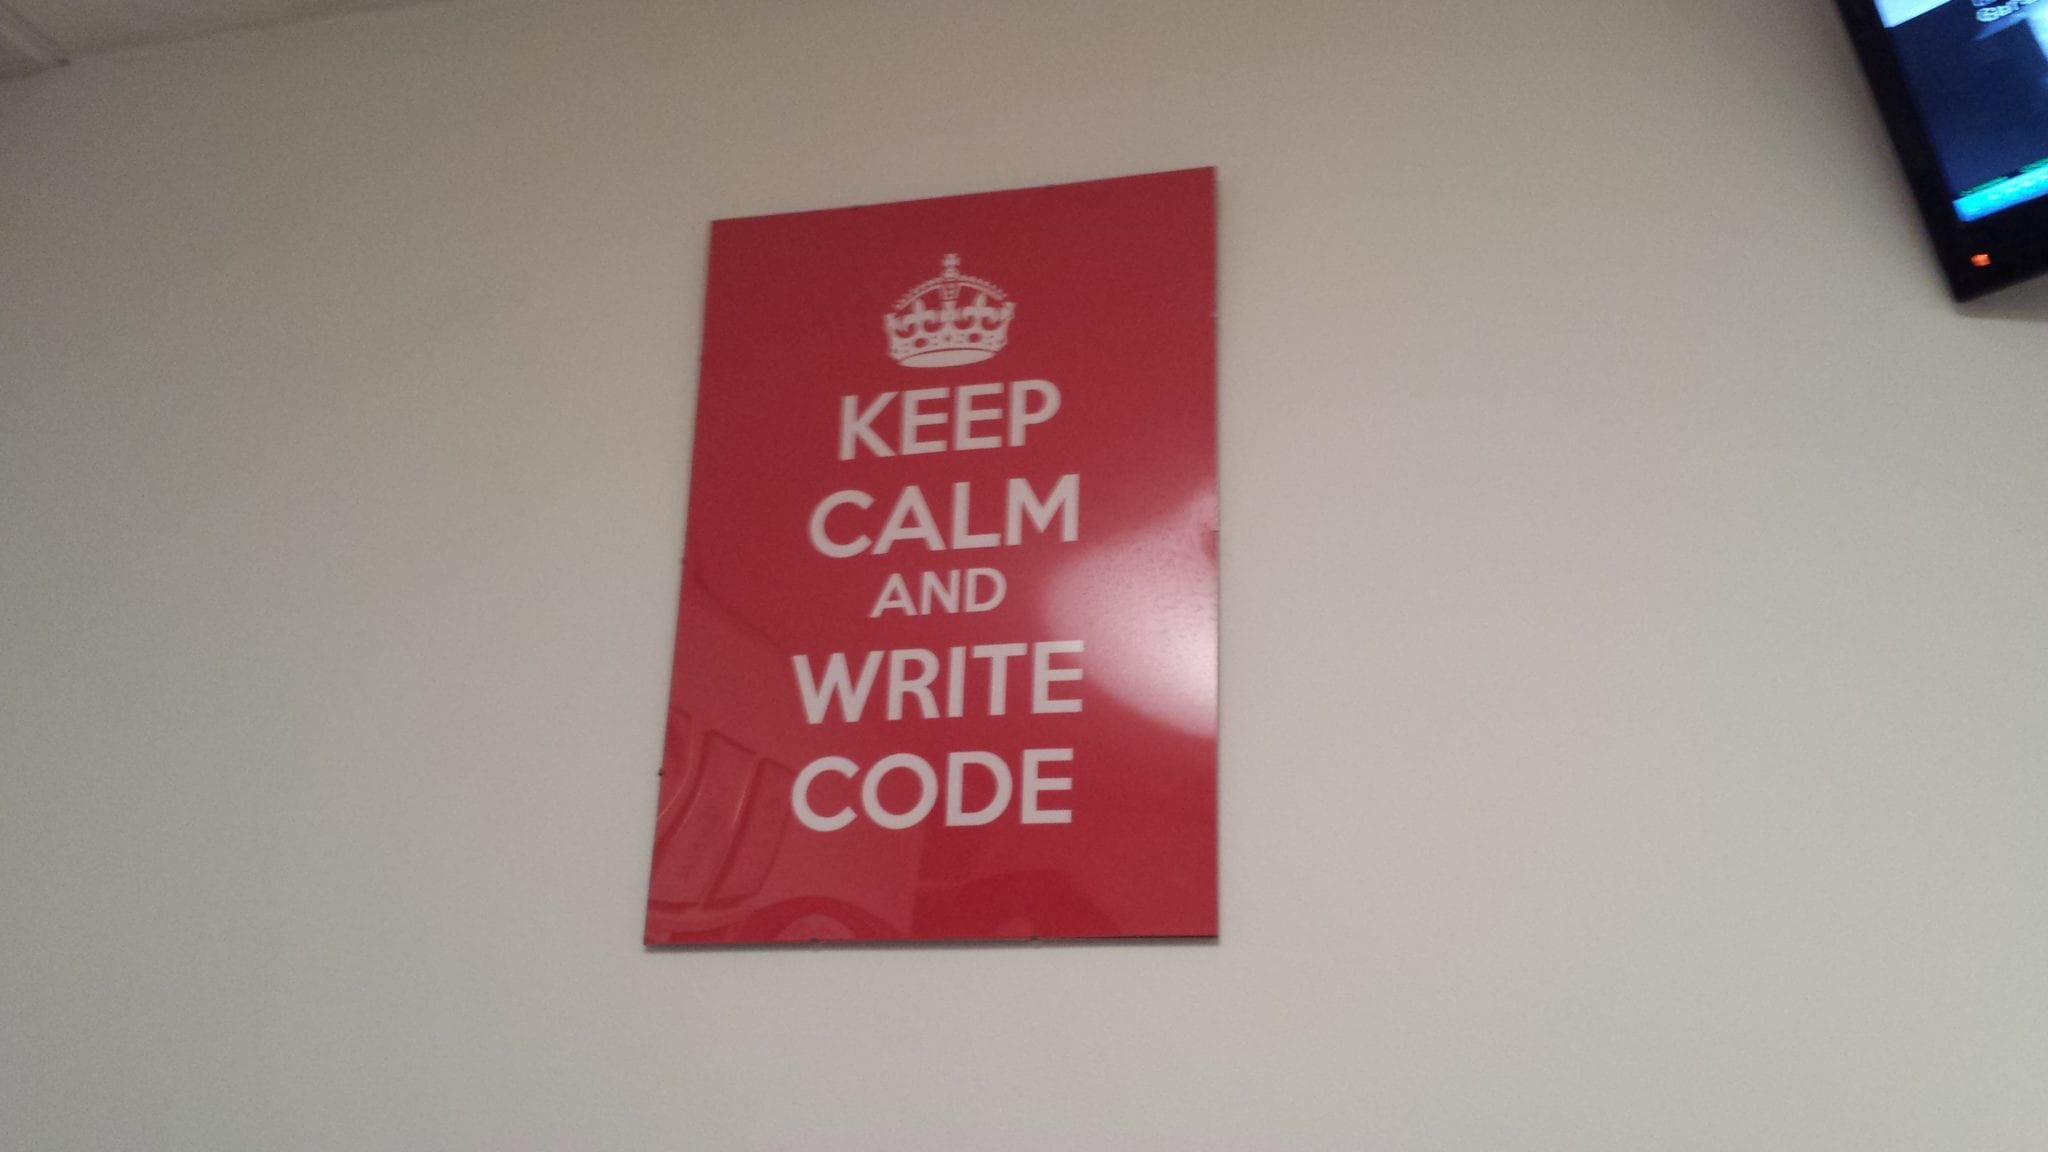 keep-calm-and-write-code-poster-for-our-office.jpg